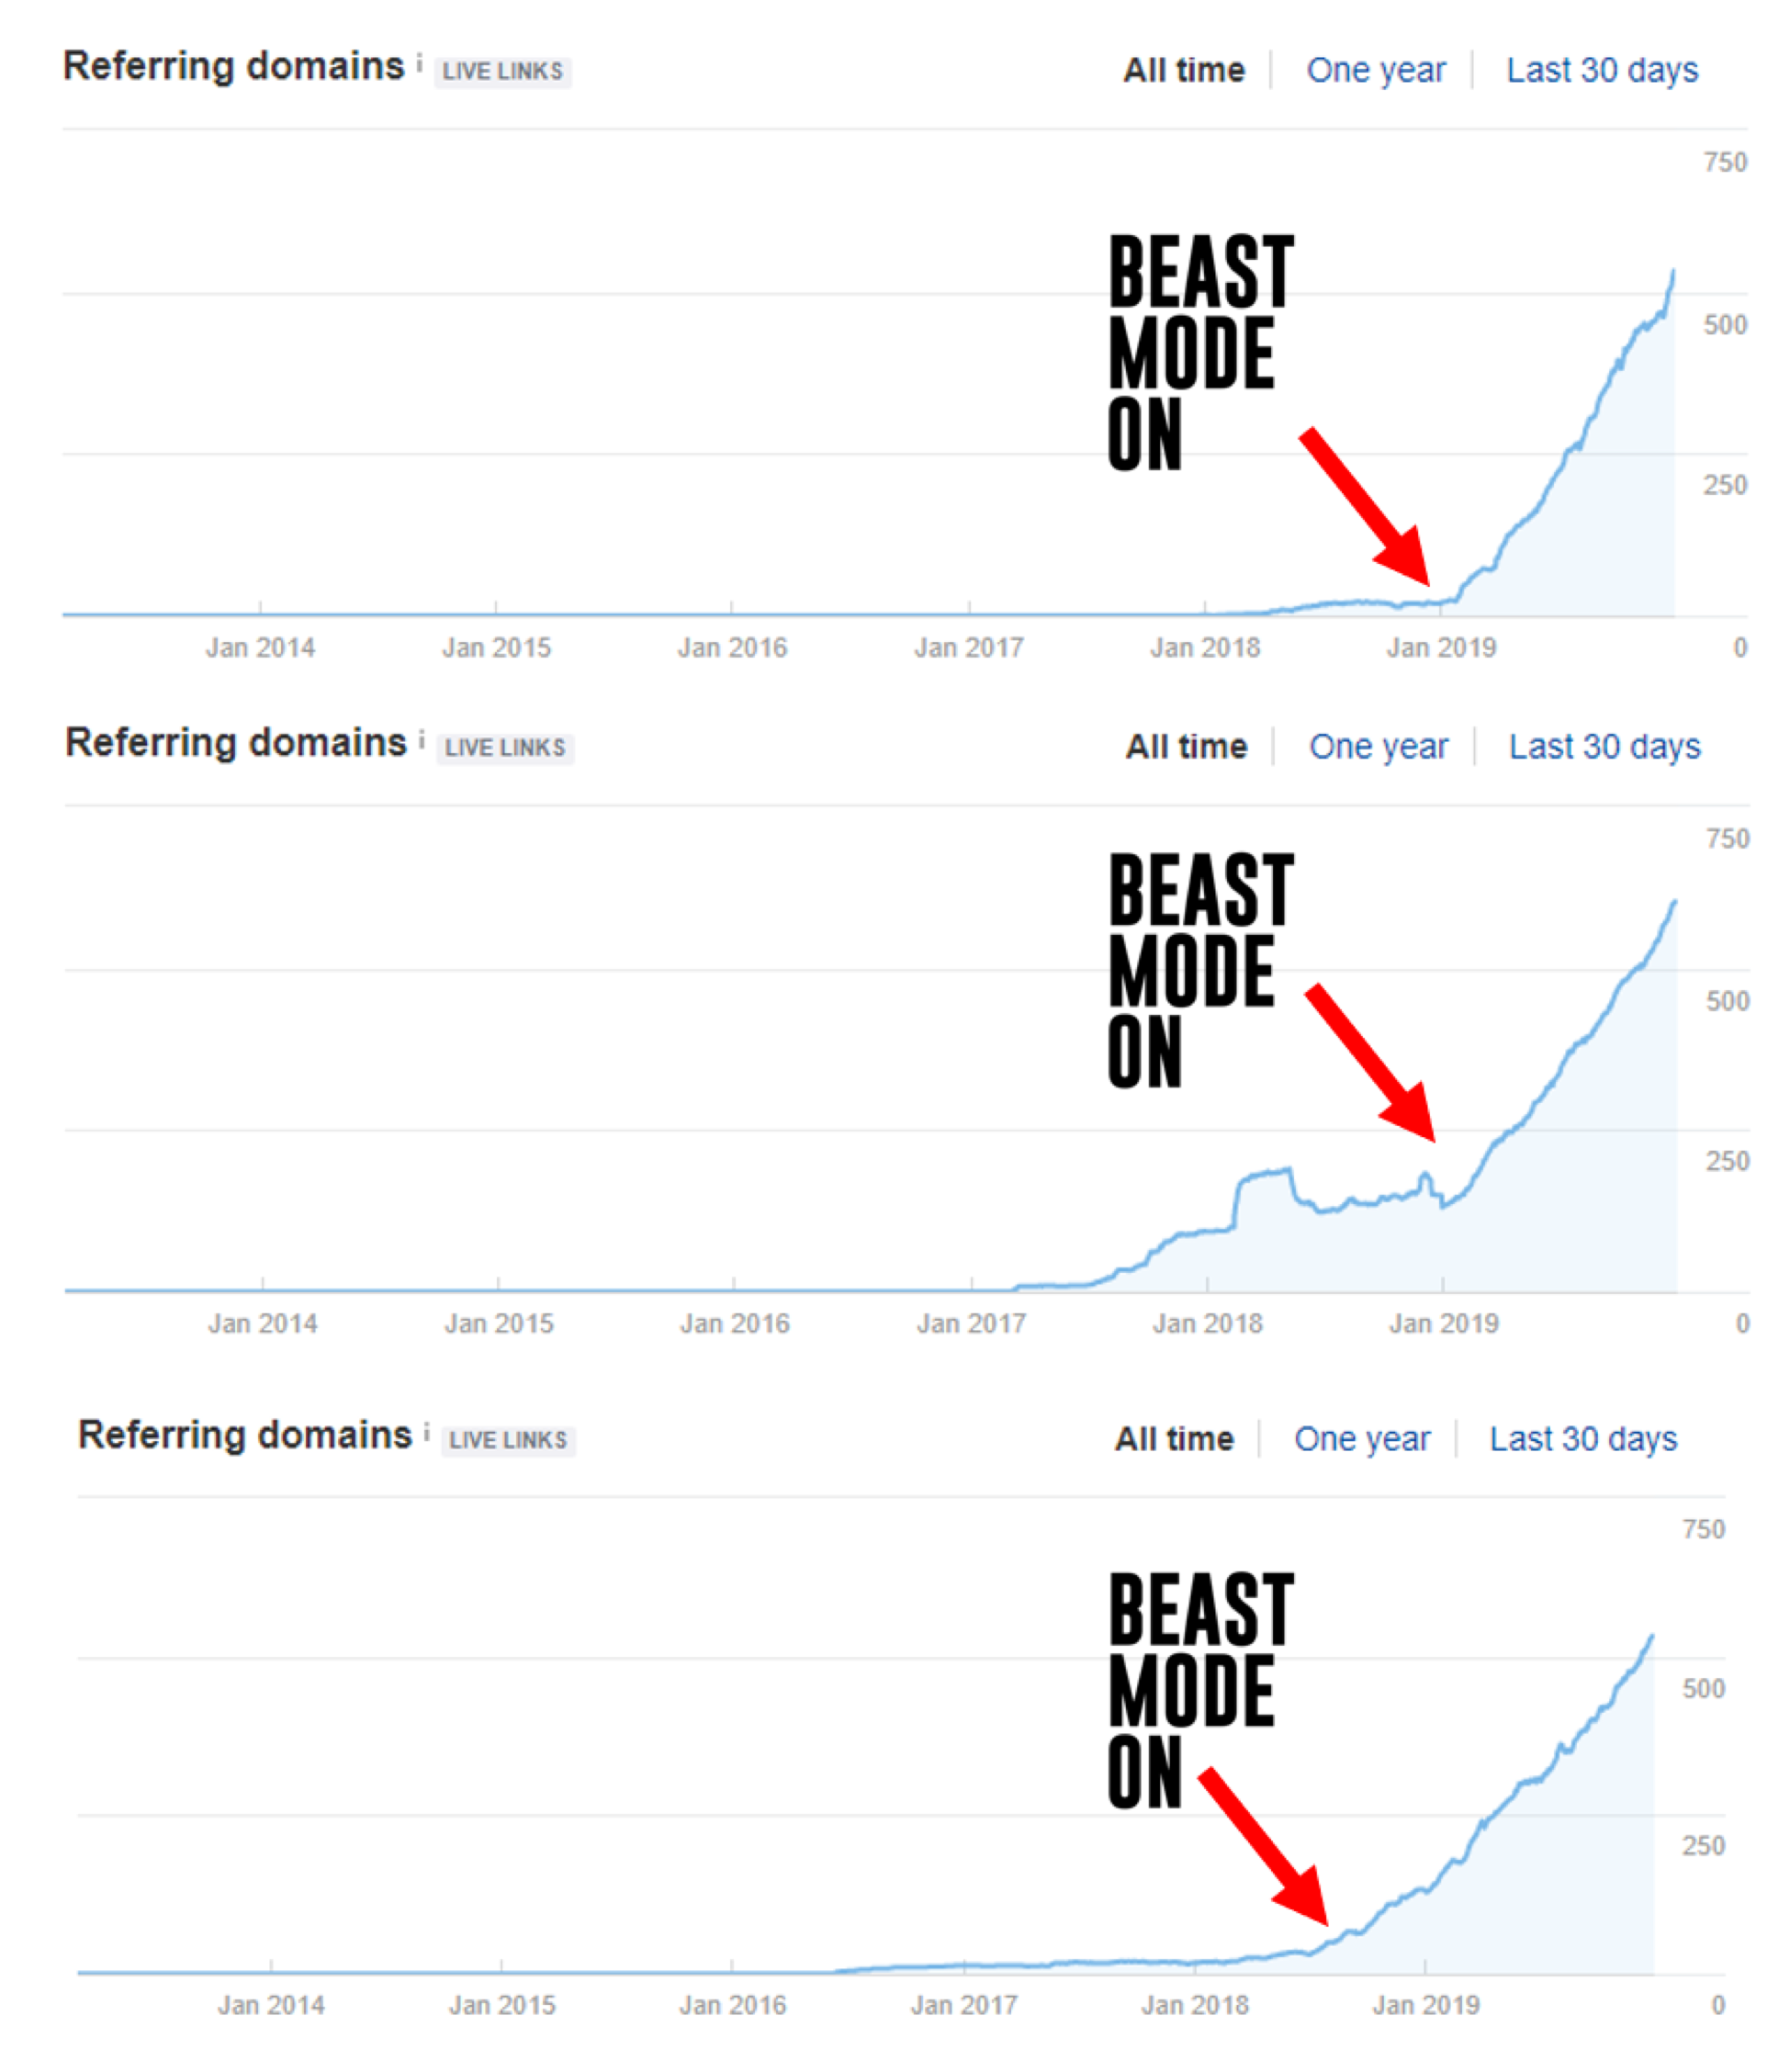 Beast mode referring domains